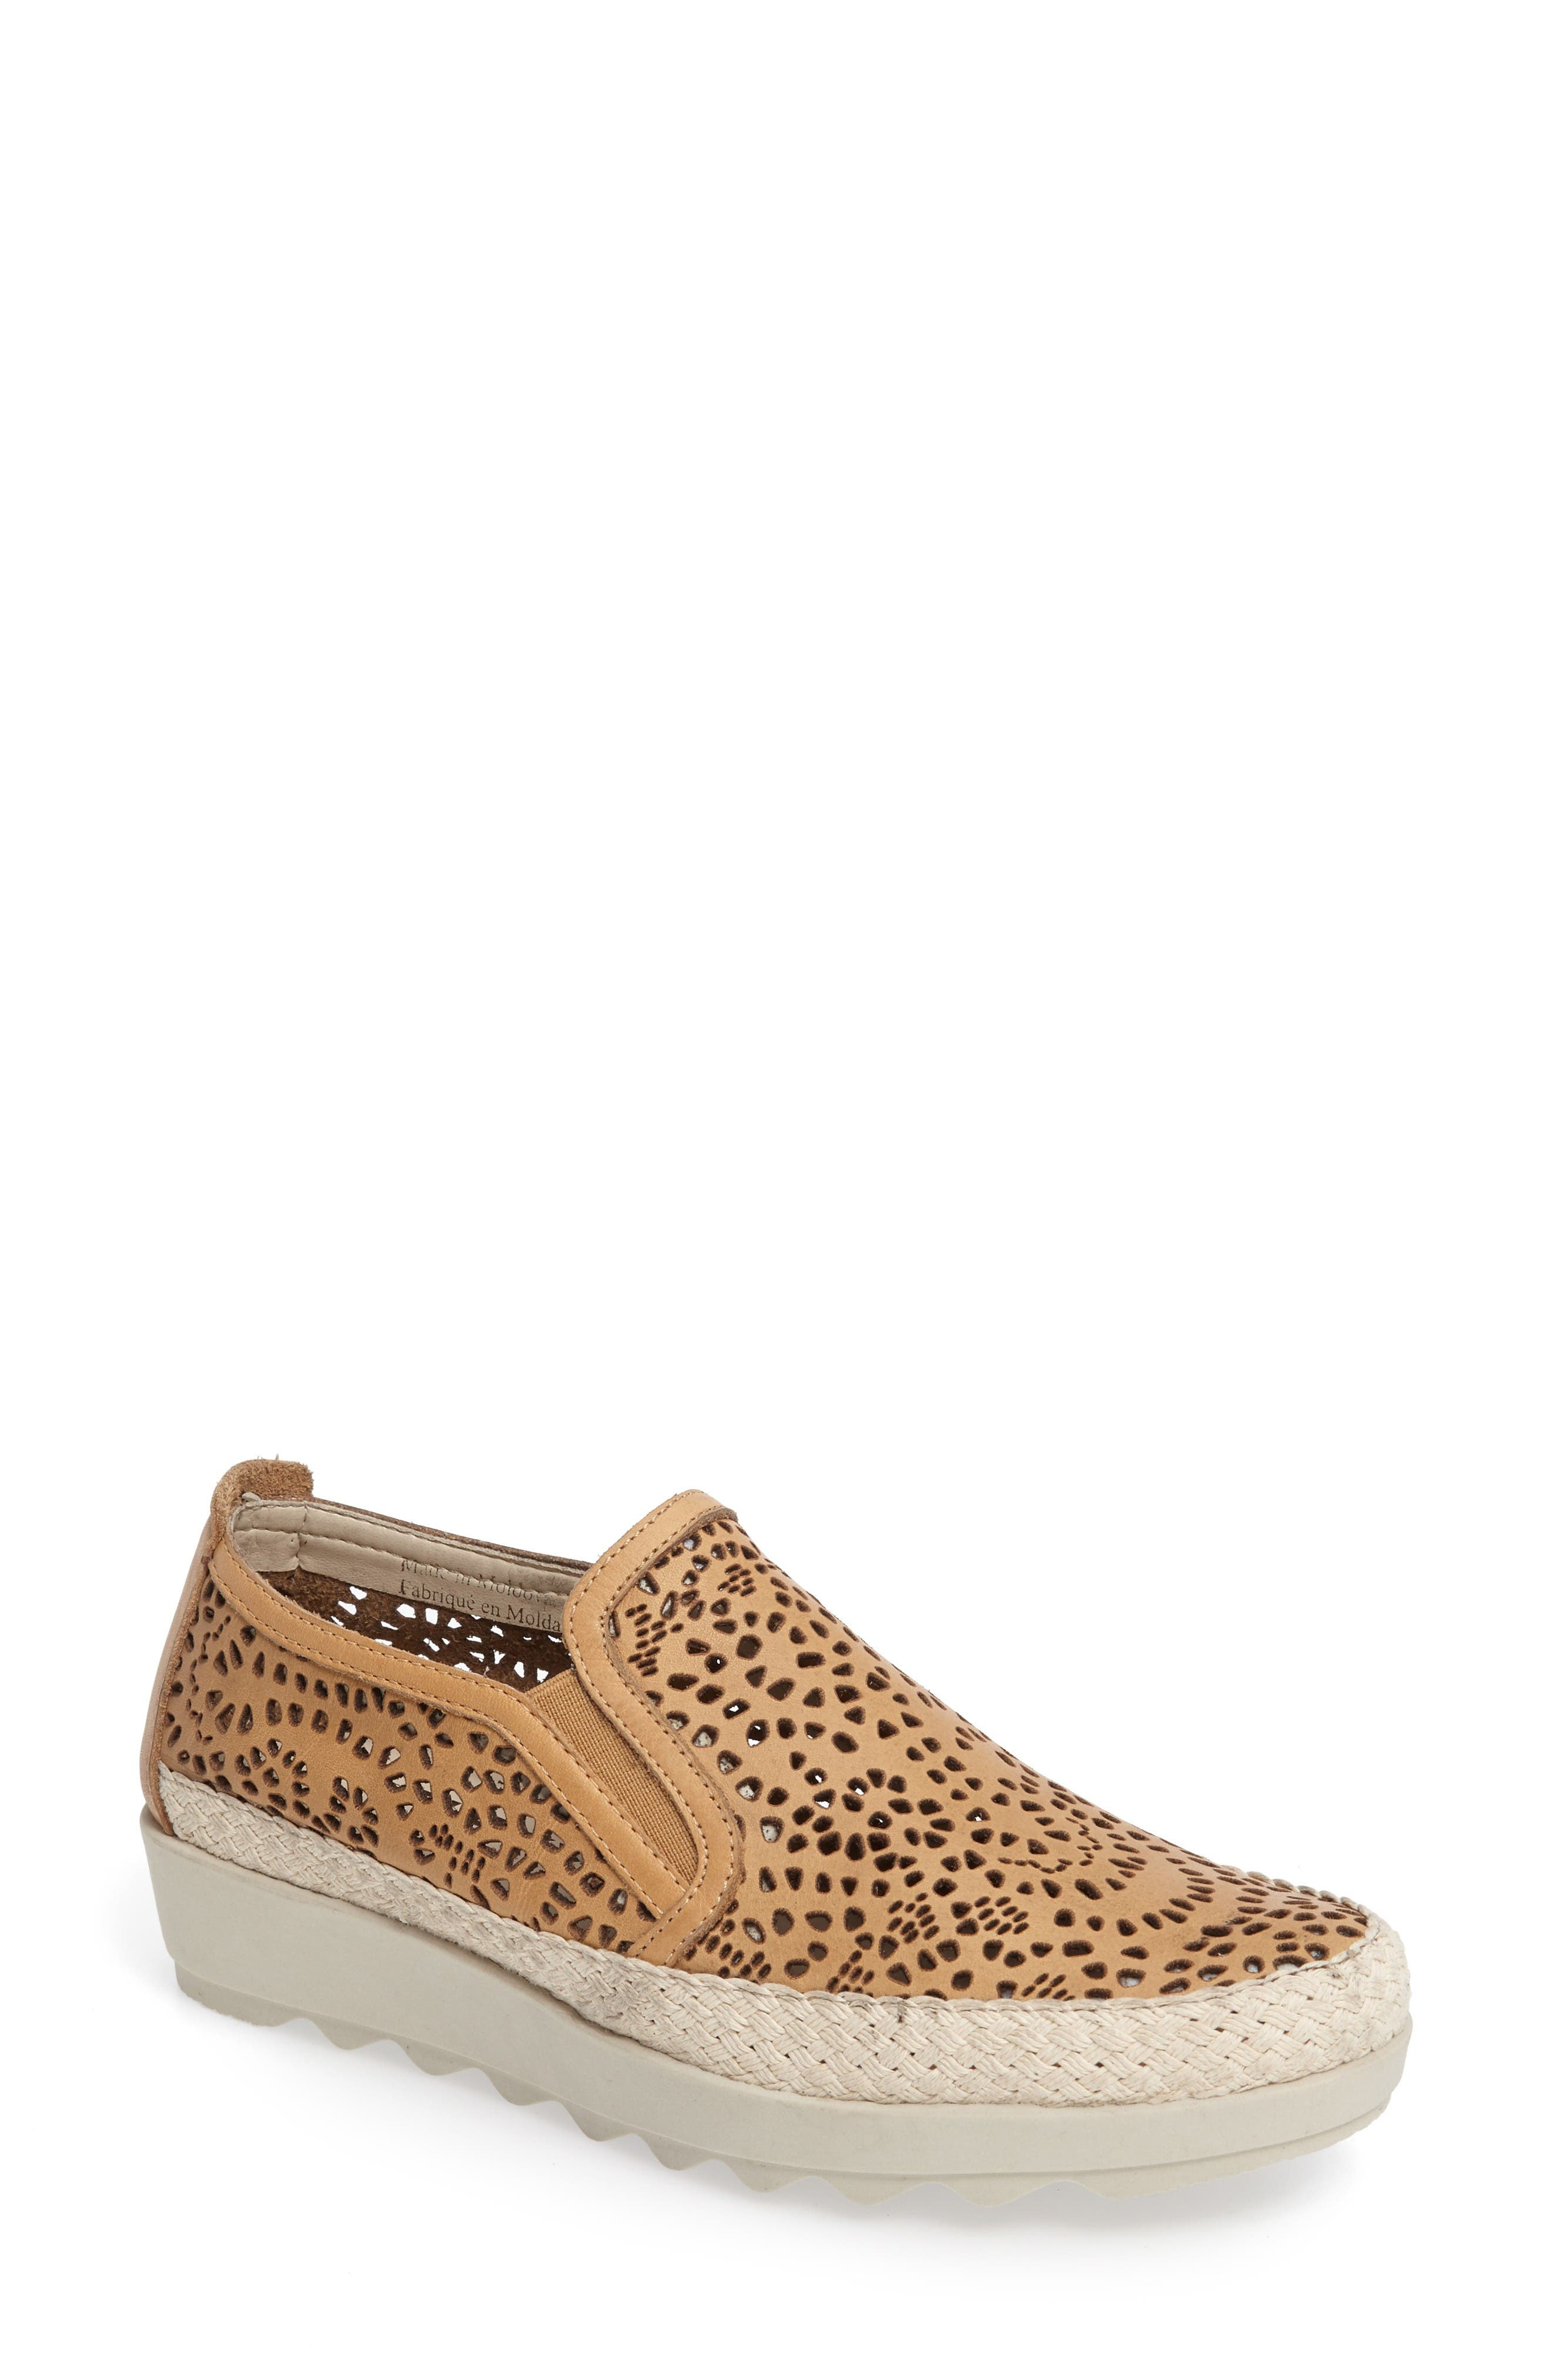 Call Me Perforated Slip-On Sneaker,                             Main thumbnail 1, color,                             Camel Leather